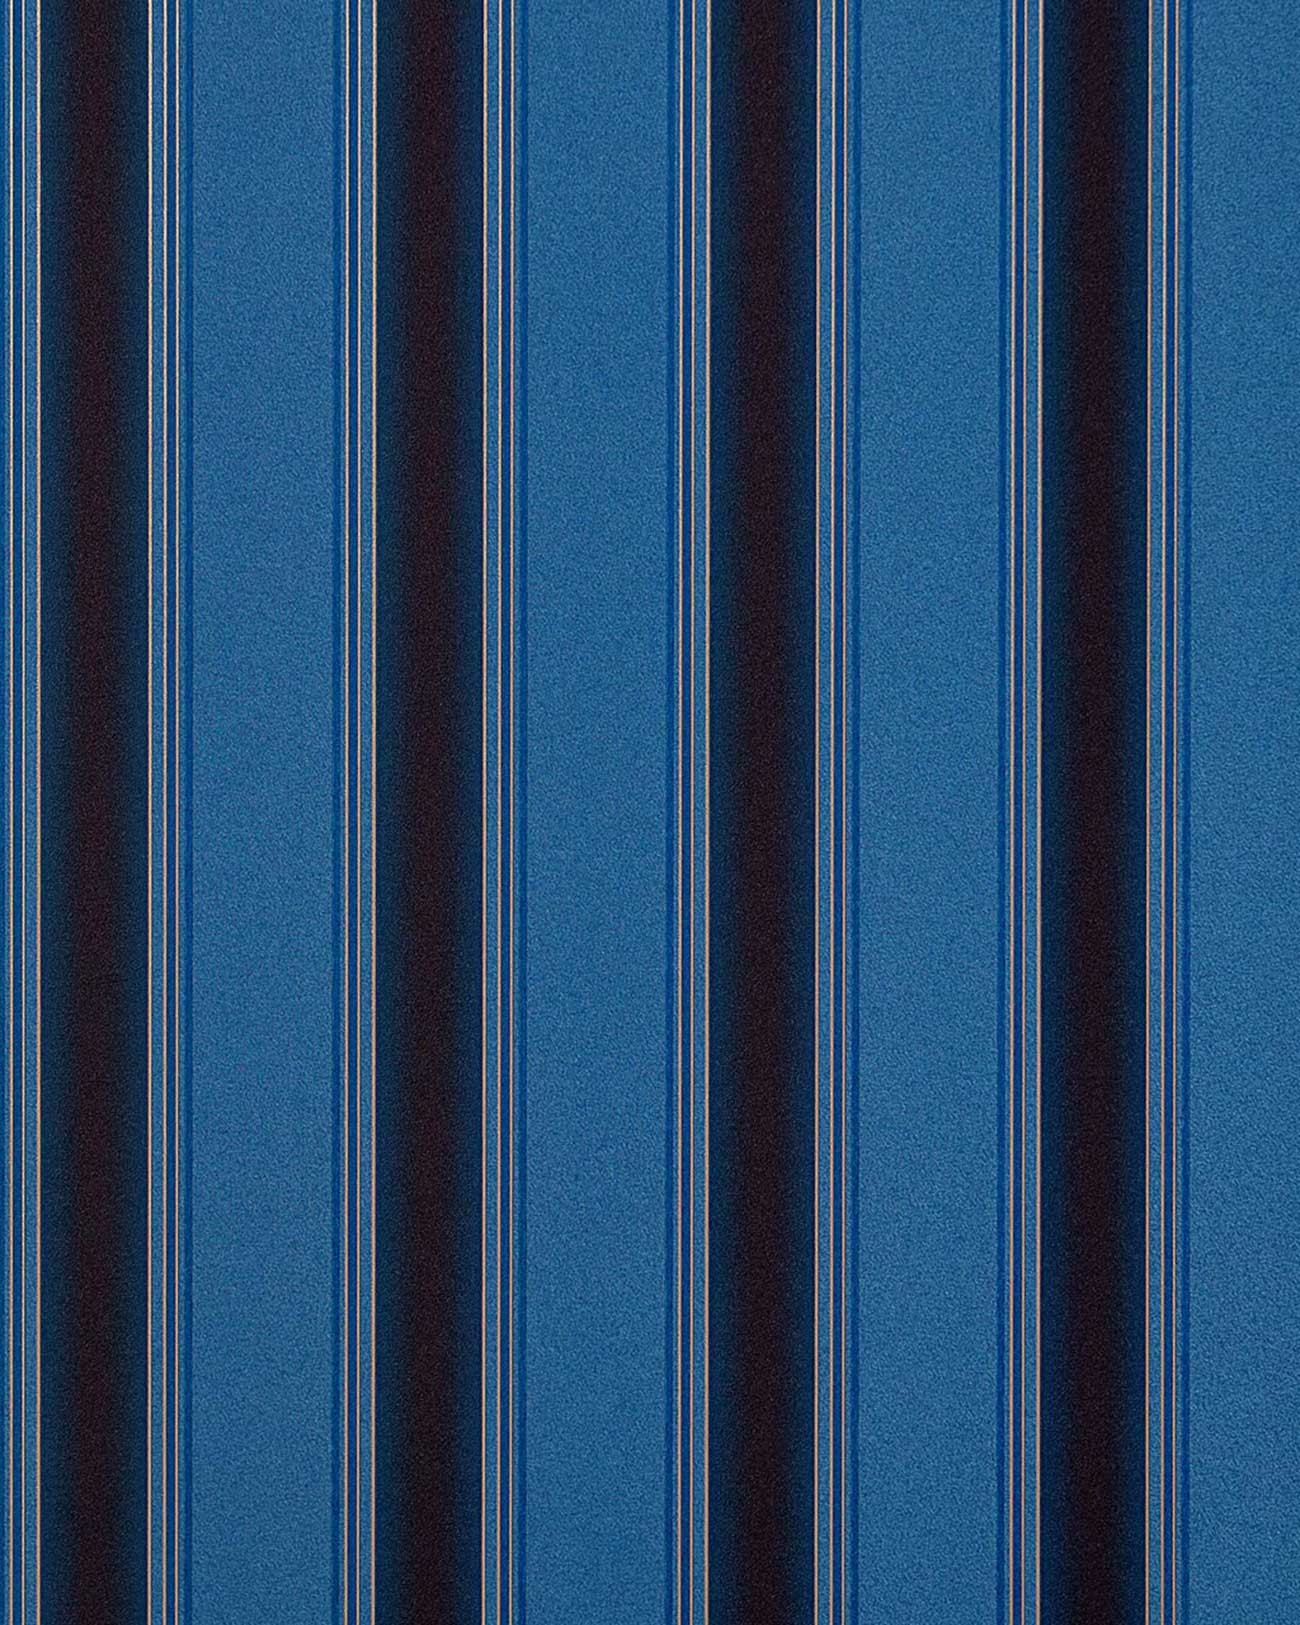 heavyweight stripe wallpaper wall edem 827 24 deep embossed light blue brown blue silver white. Black Bedroom Furniture Sets. Home Design Ideas